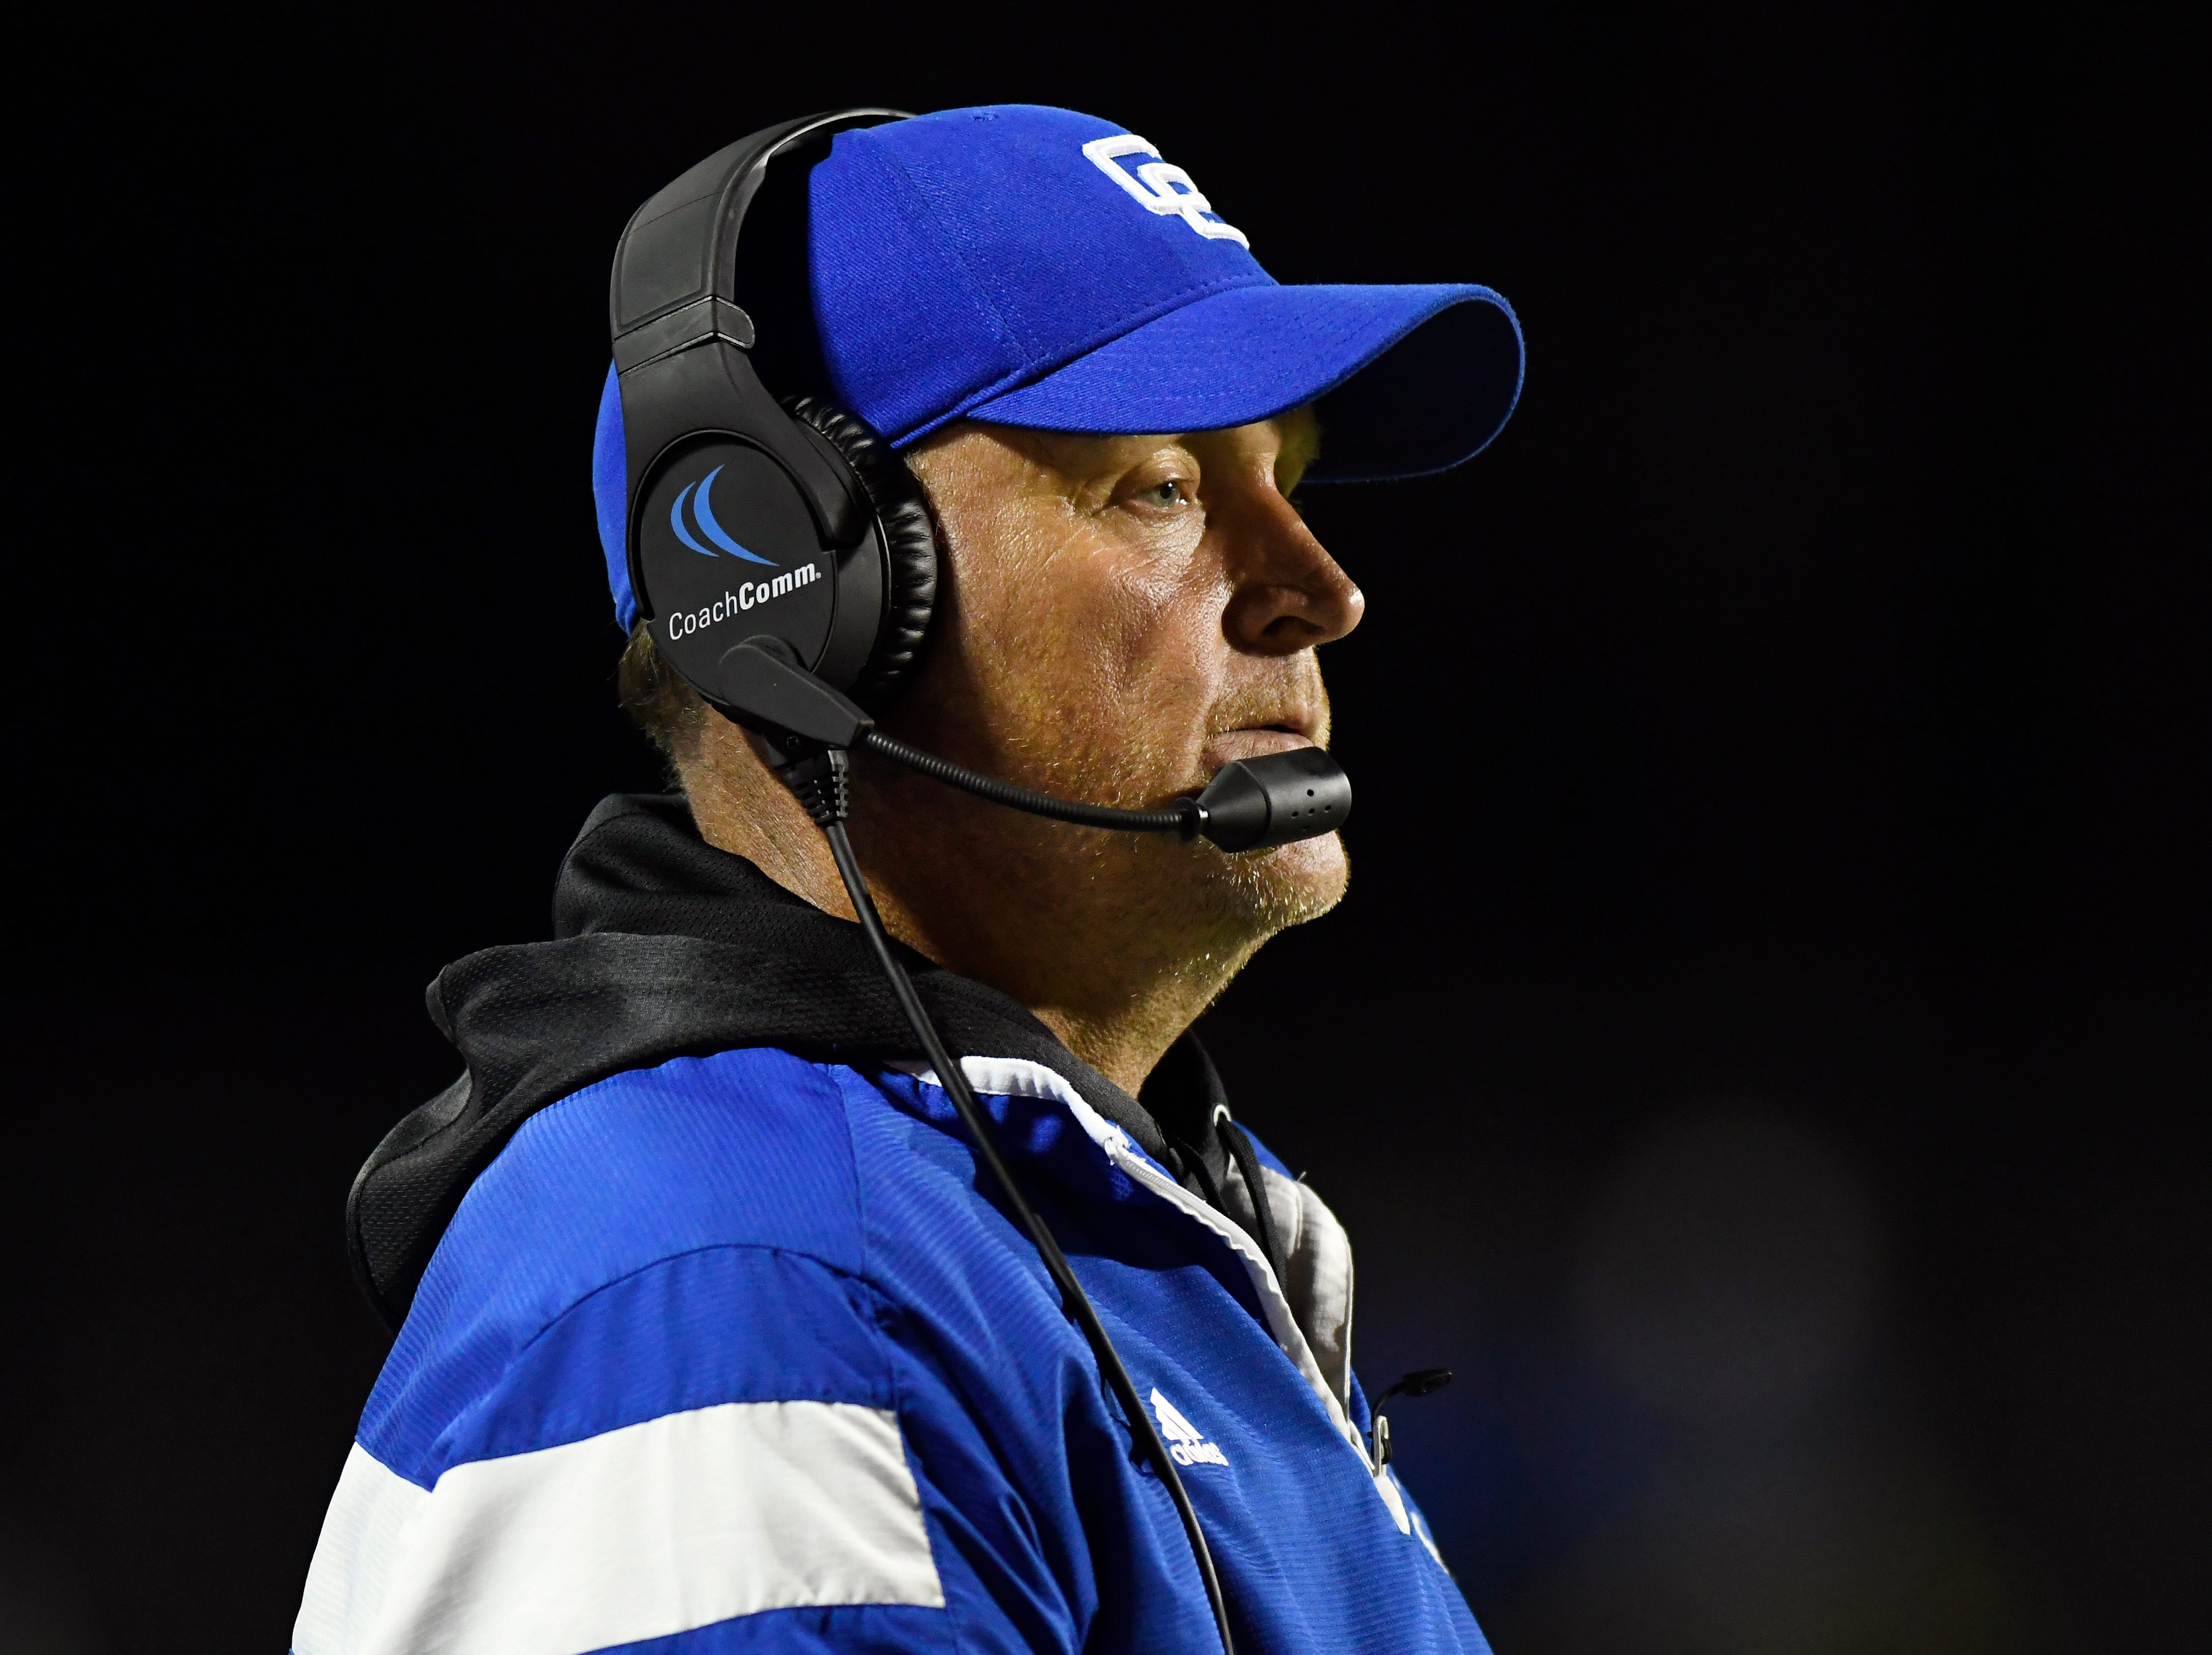 Detroit Catholic Central football head coach Dan Anderson watches his team play against Birmingham Brother Rice in the third quarter, Saturday, Sept. 22, 2018 at Hurley Field in Berkley, Mich.  Catholic Central defeated Brother Rice, 21-0.